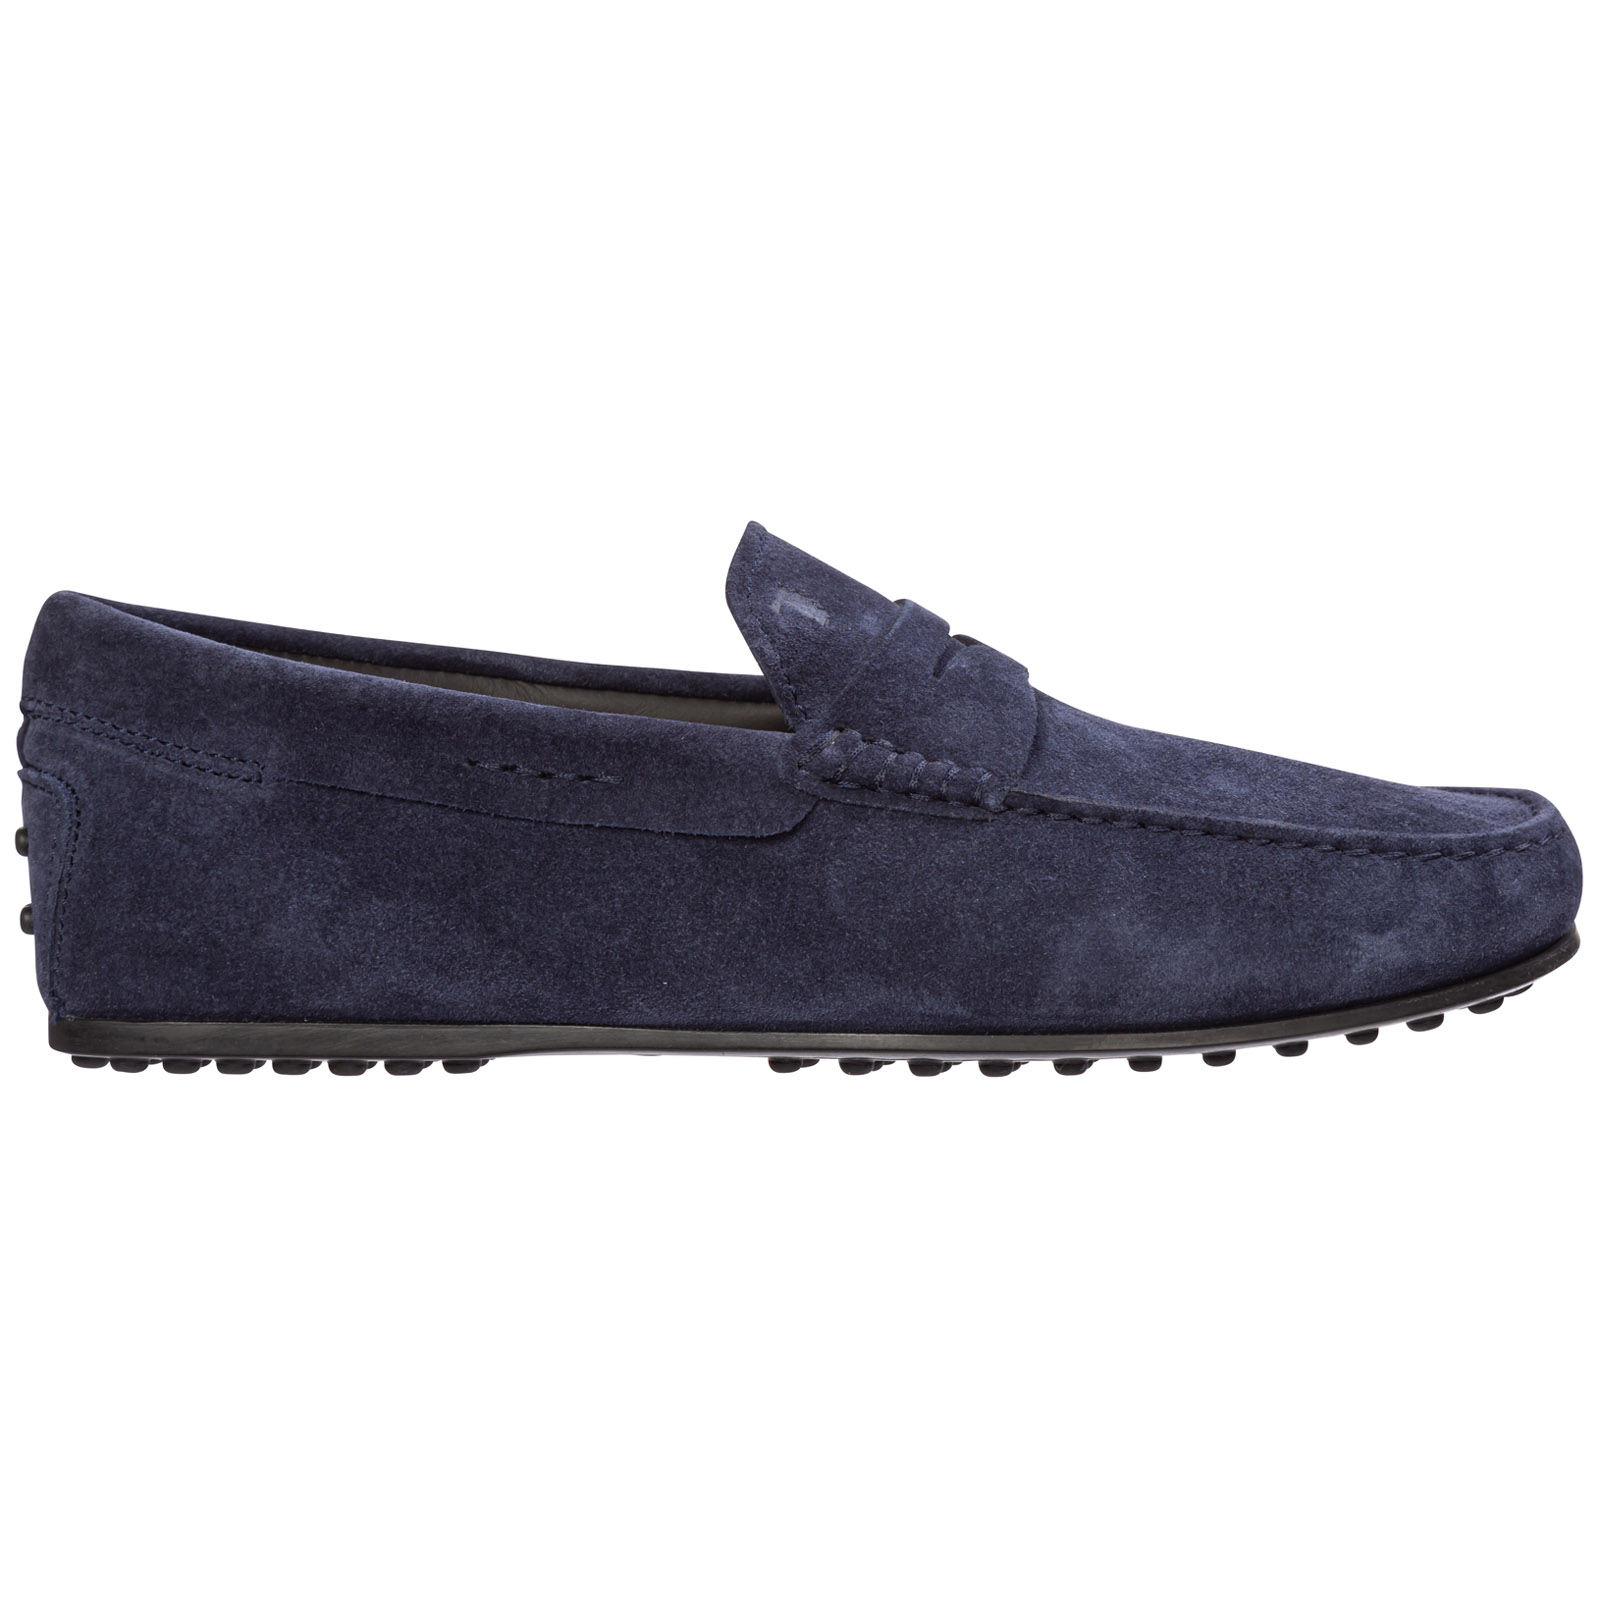 Tod's Loafers MEN'S SUEDE LOAFERS MOCCASINS CITY